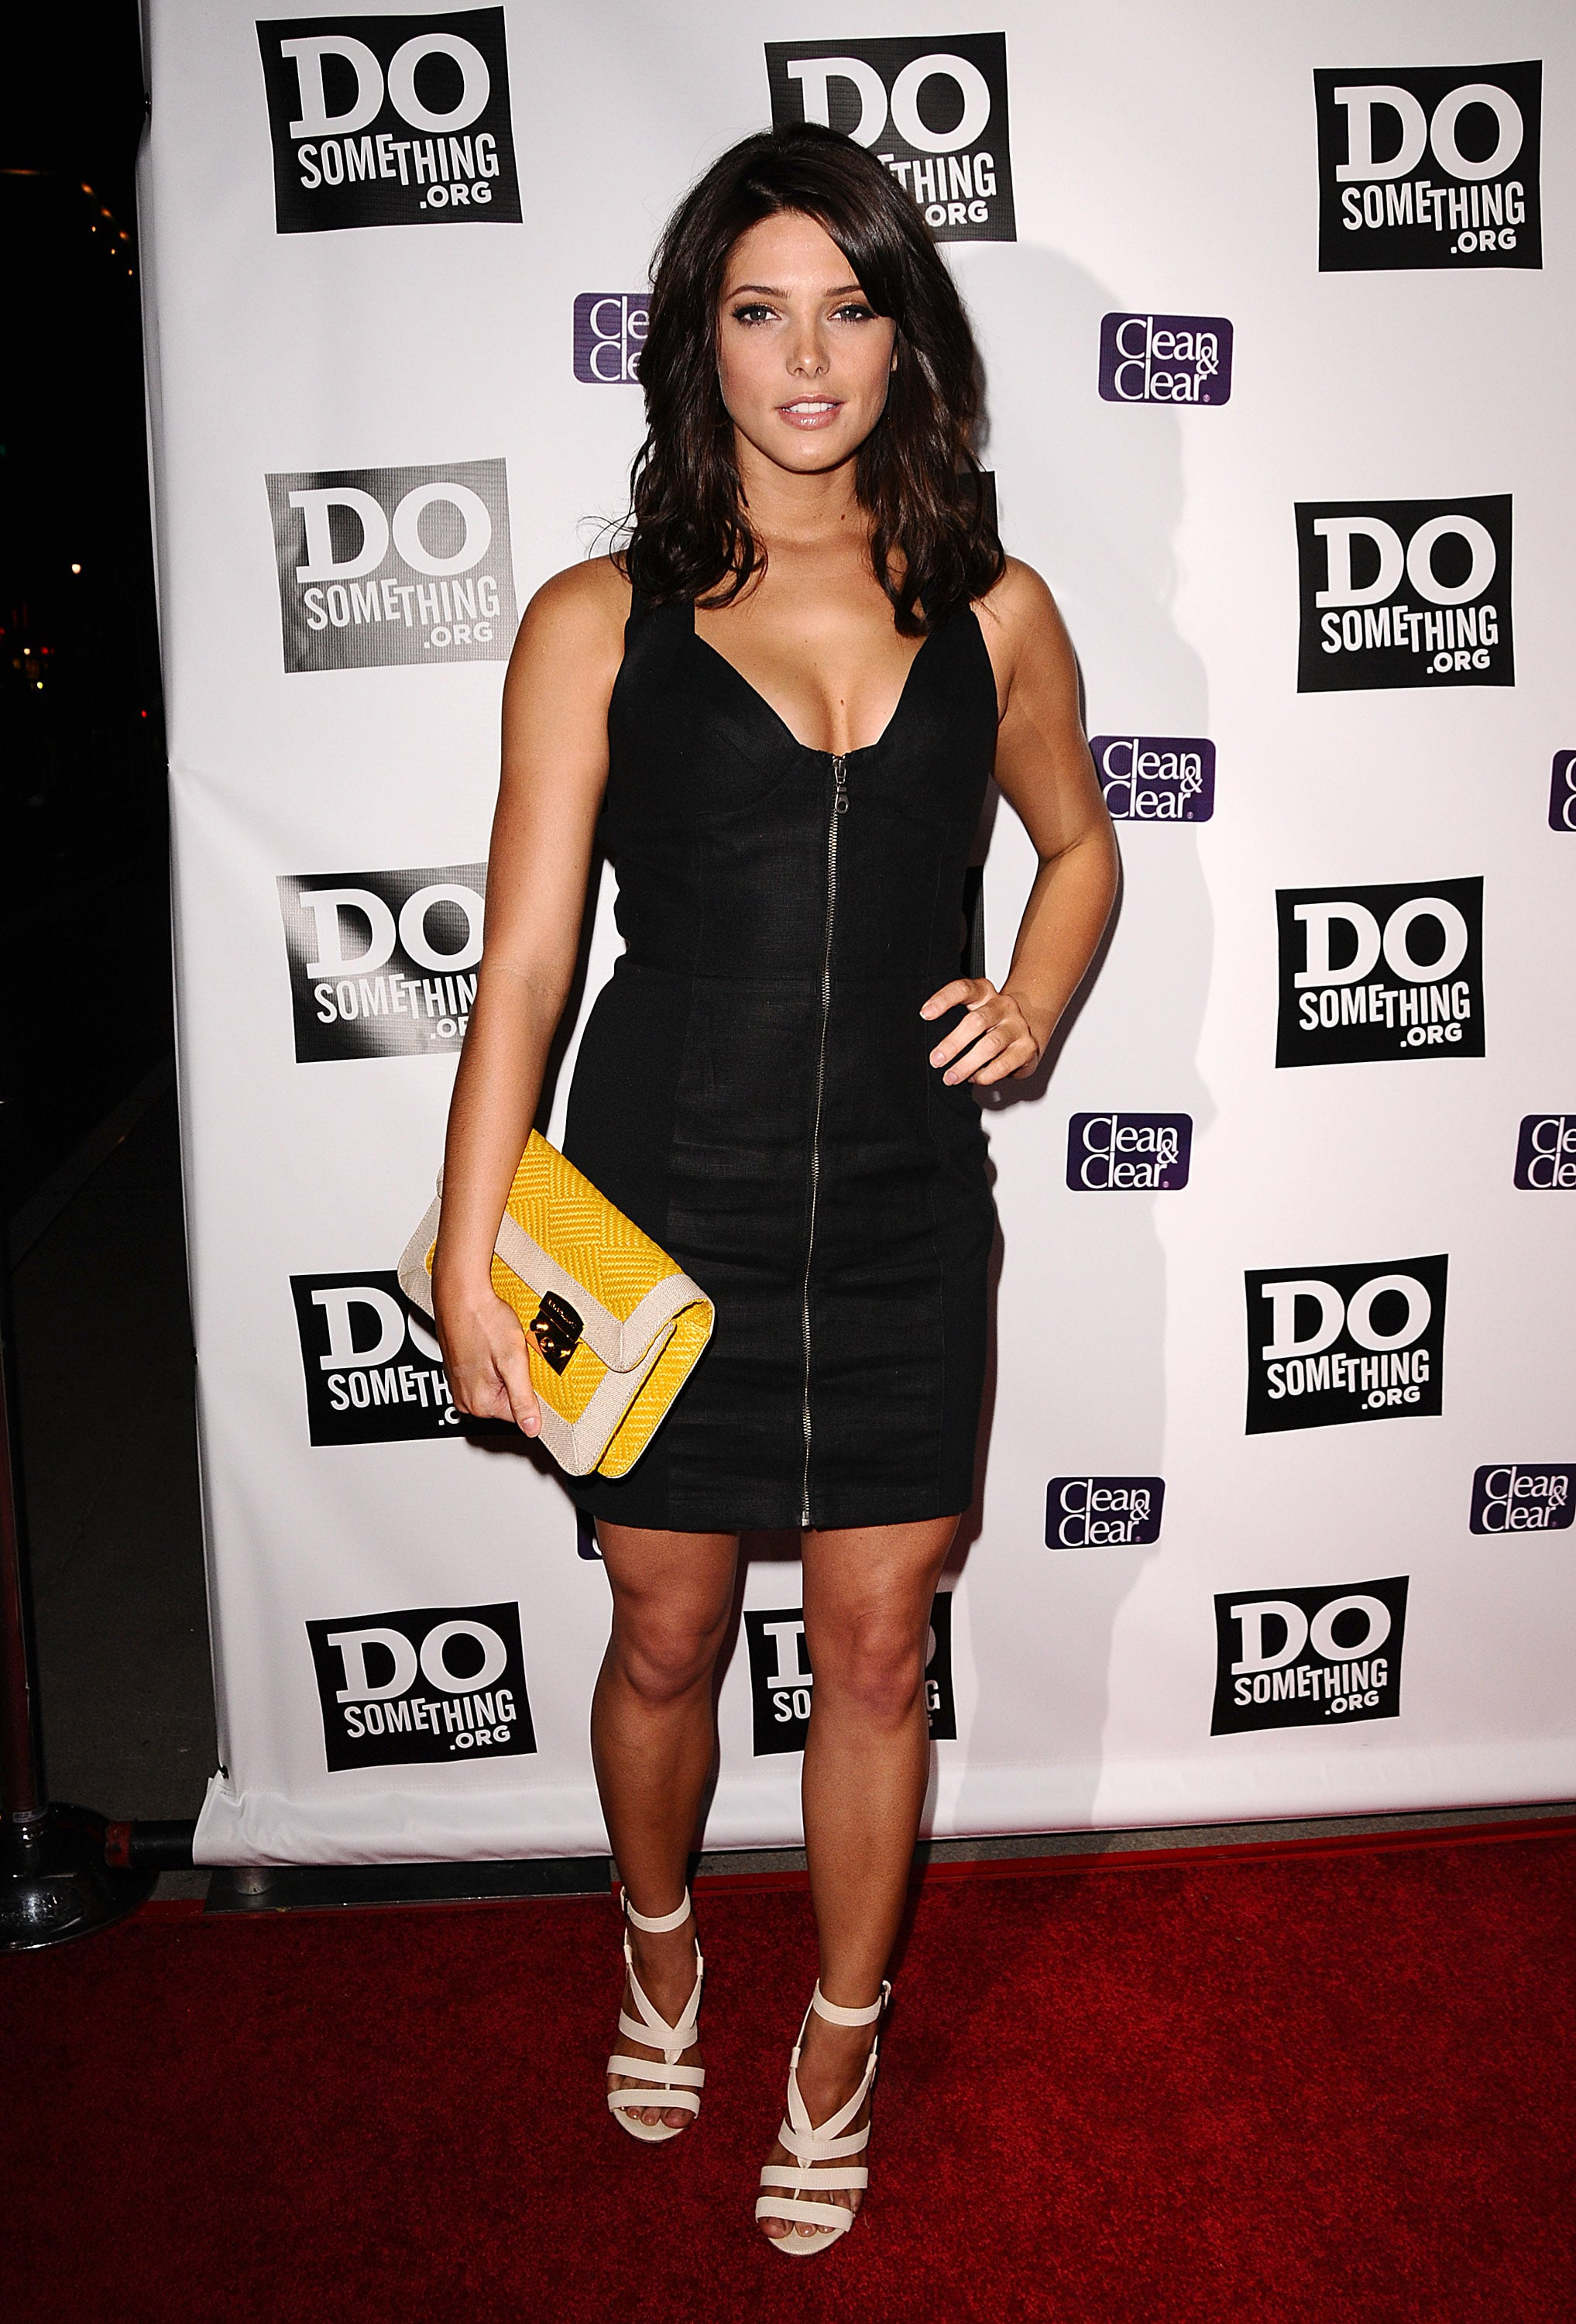 A sexy, front-zip mini and strappy heels for a DoSomething.org event in 2009.